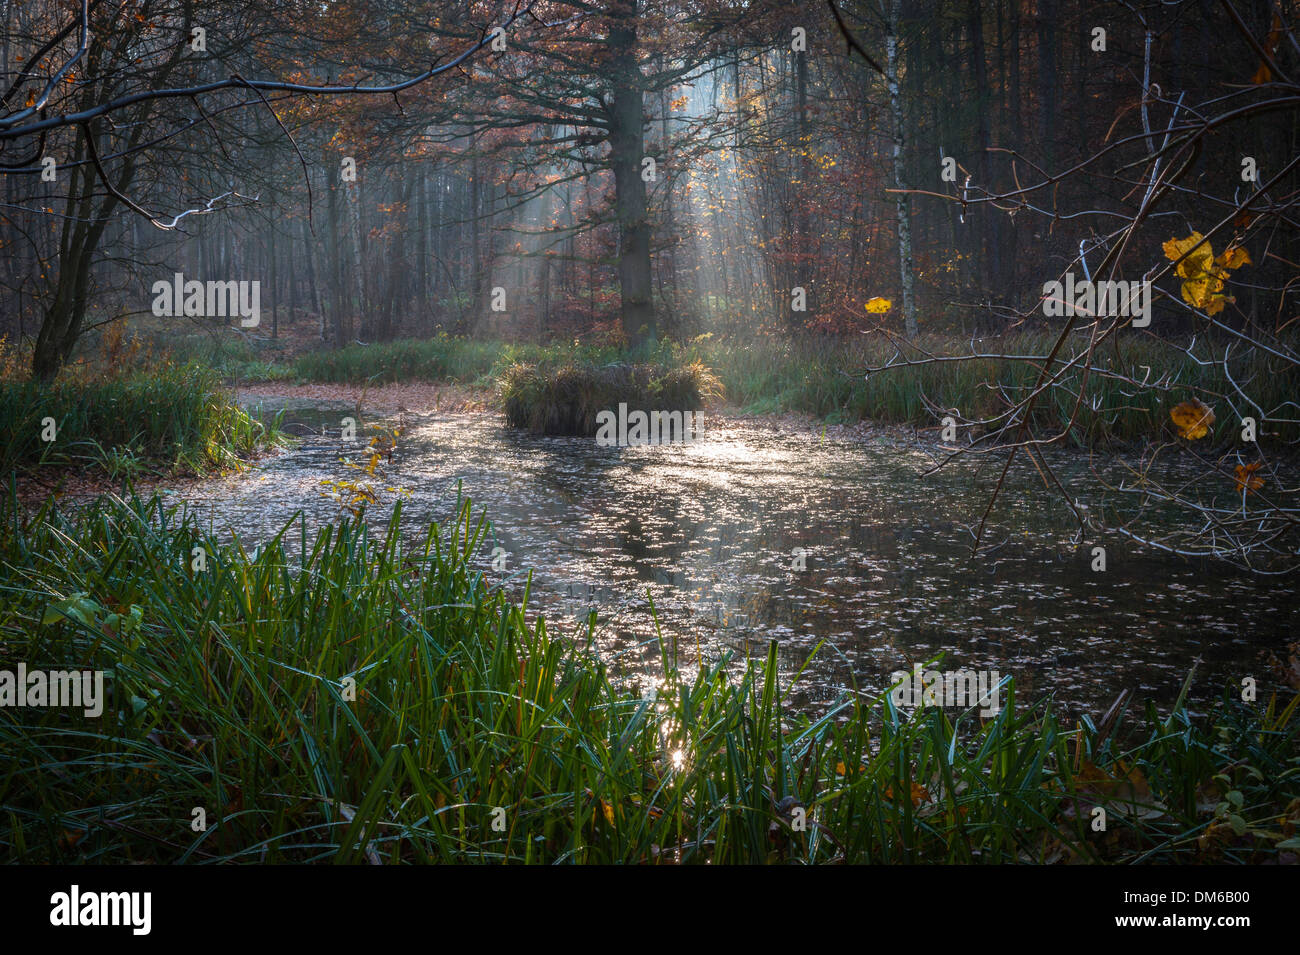 Forest pond, collapse sinkhole, Ettersberg, Weimar, Thuringia, Germany - Stock Image